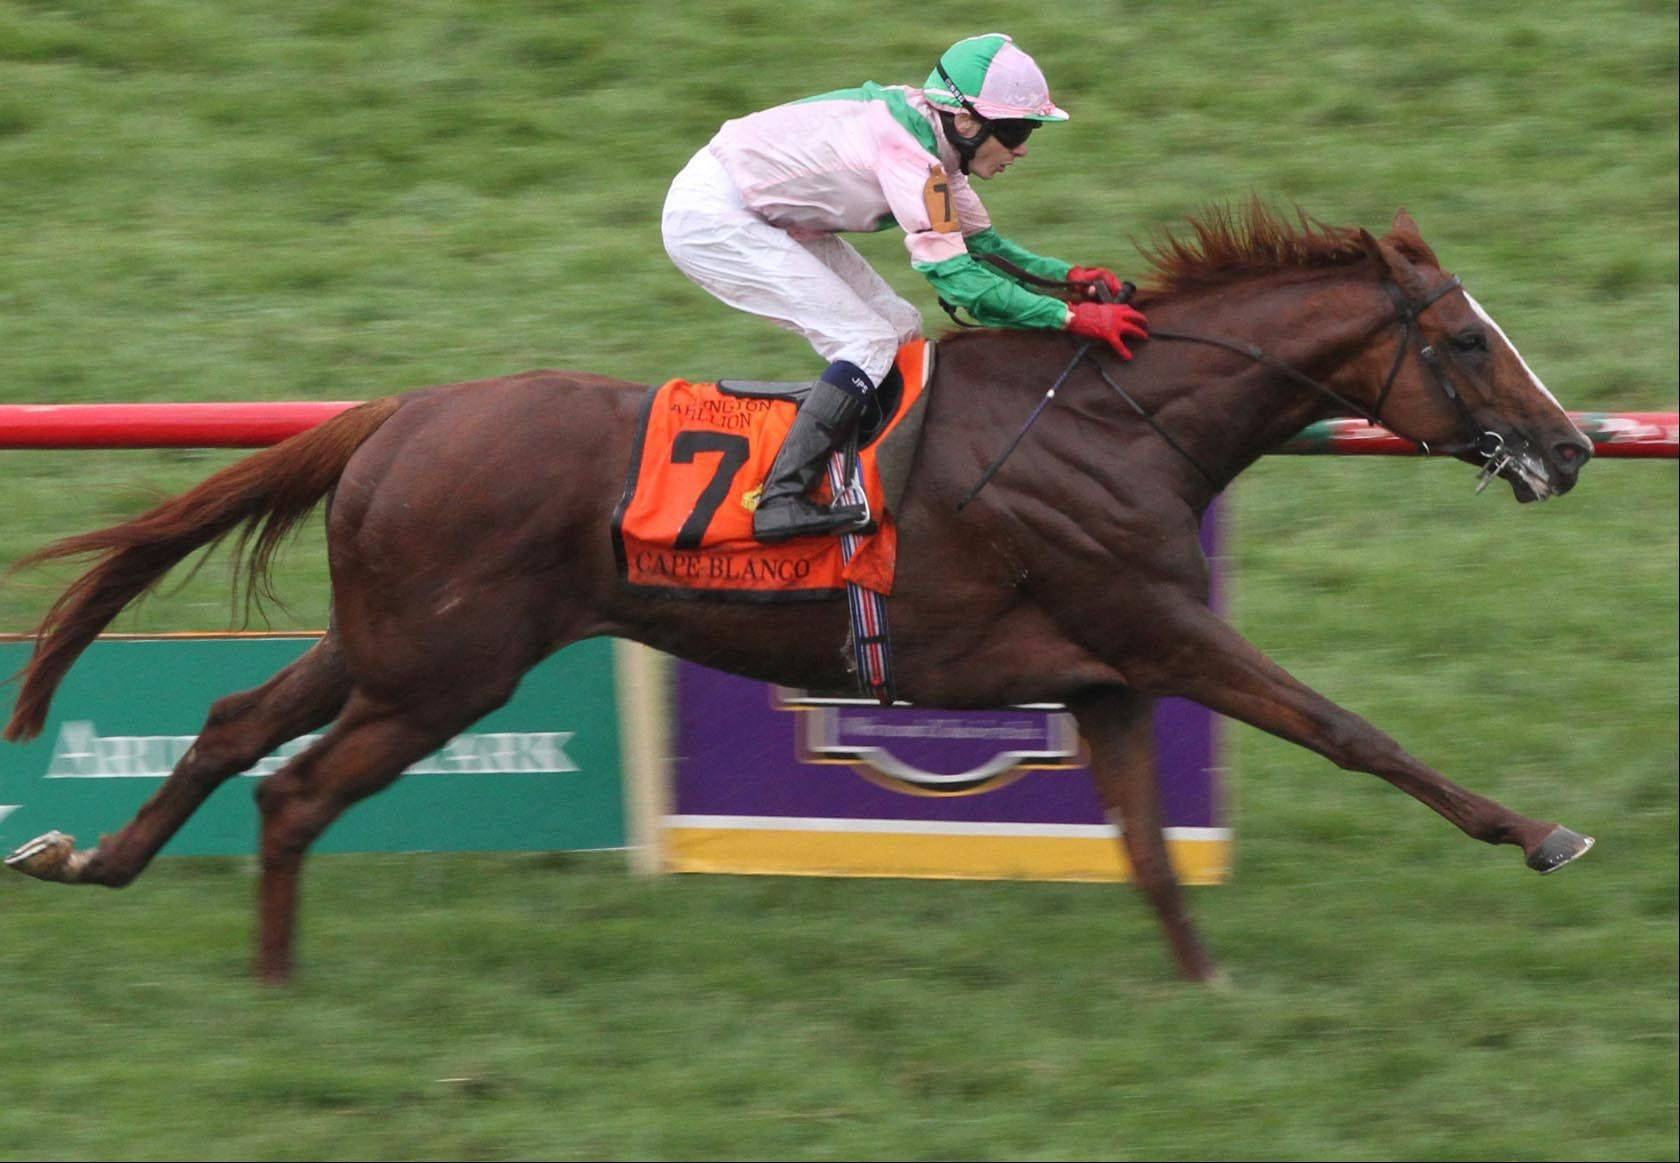 Jamie Spencer, riding Cape Blanco, won the Arlington Million at Arlington Park in 2011.